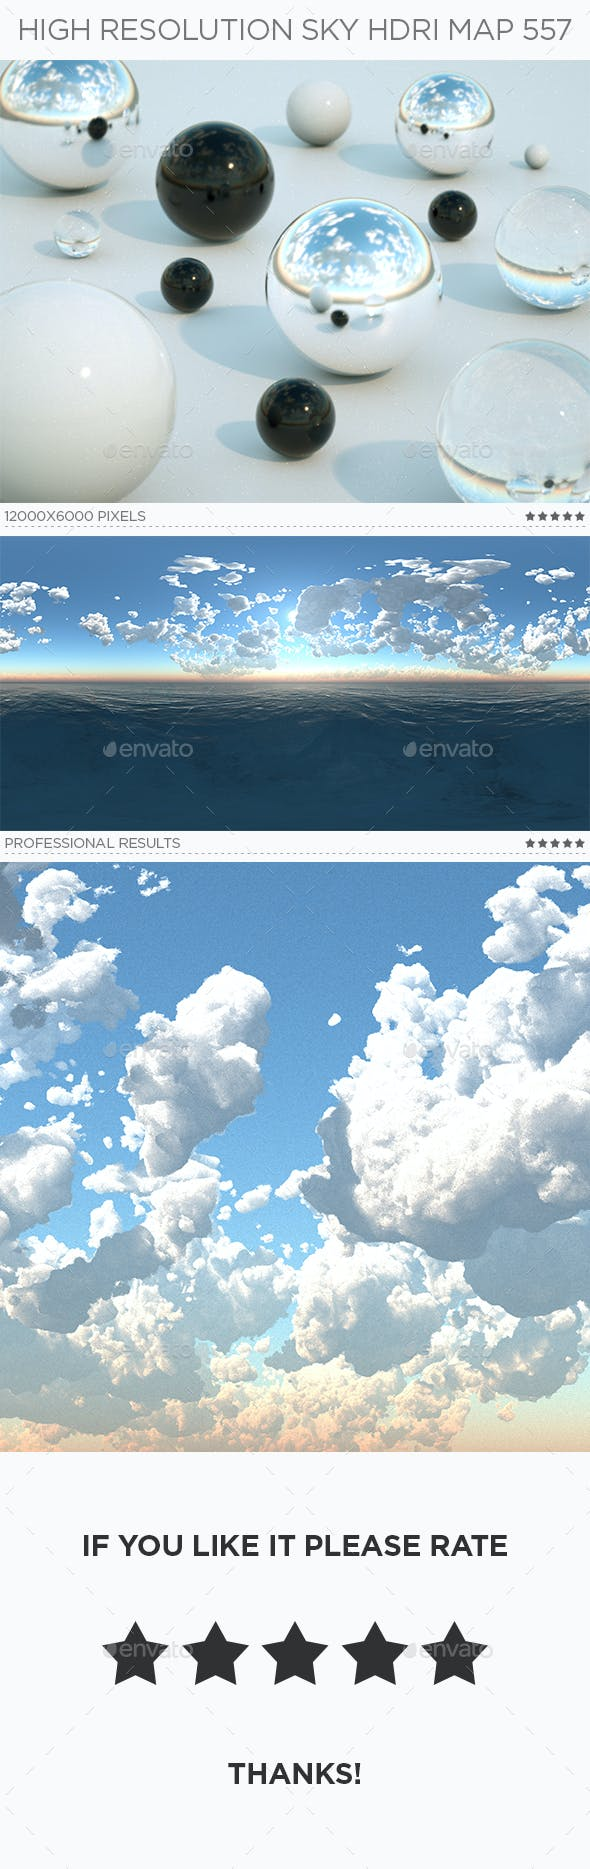 High Resolution Sky HDRi Map 557 - 3DOcean Item for Sale